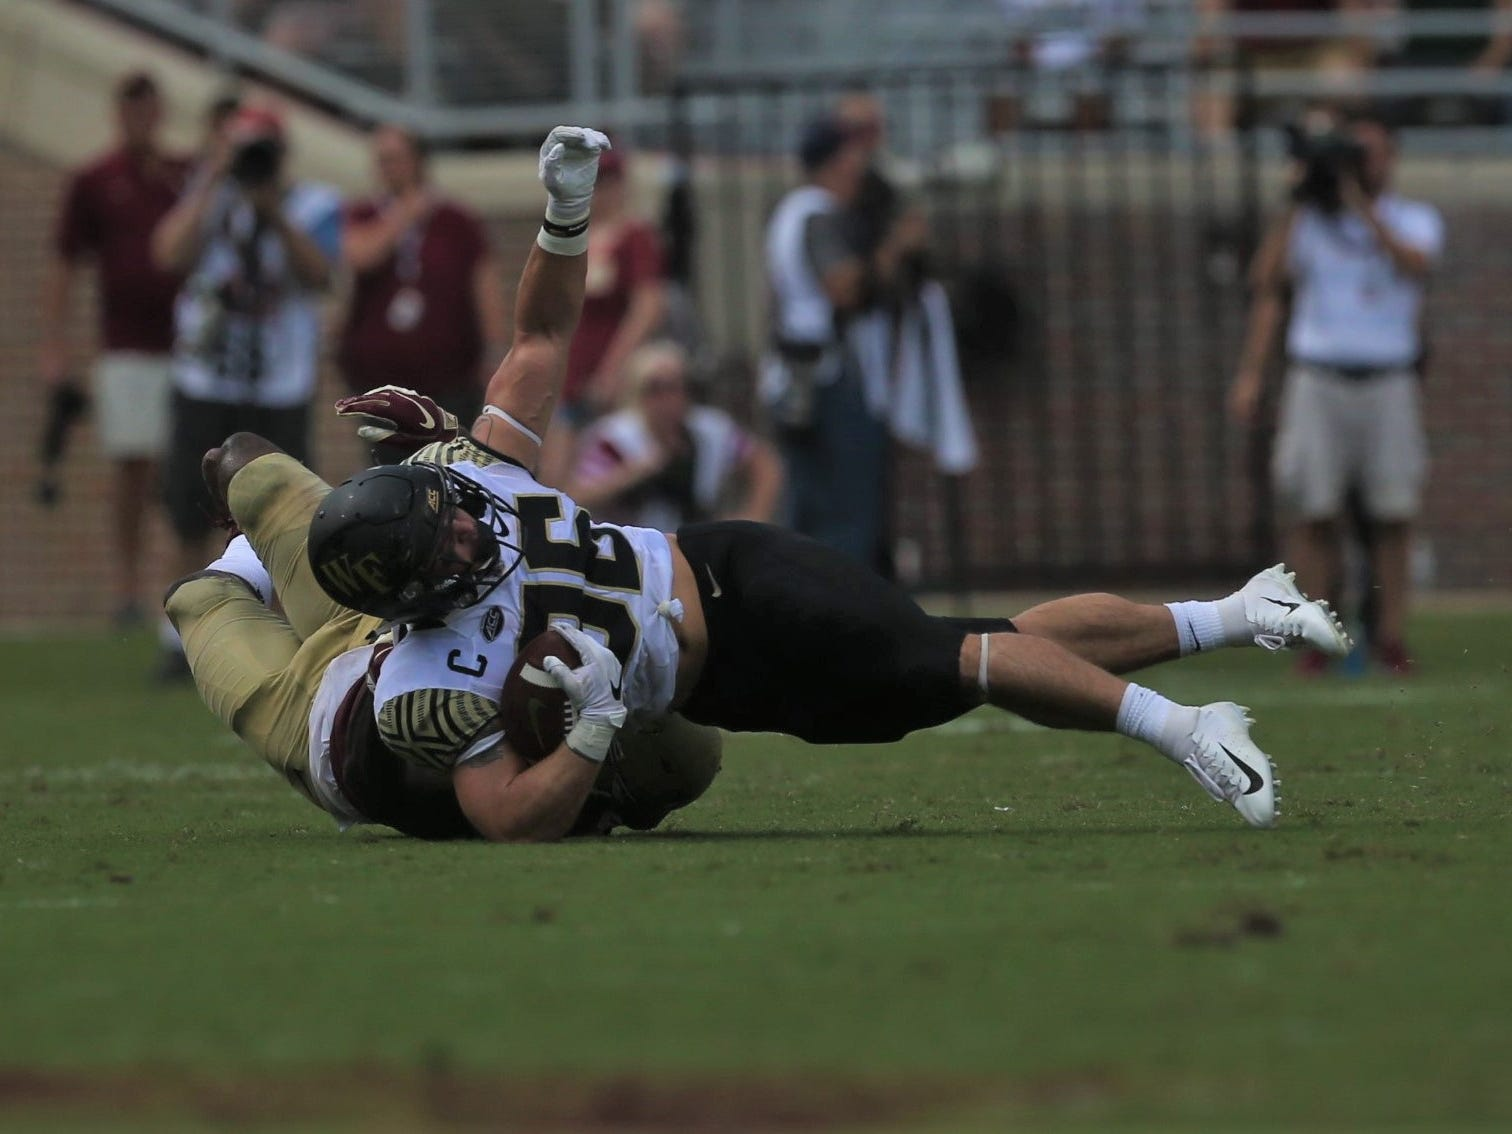 Wake Forest running back Cade Carney is taken down by a Florida State defender in space during a game at Doak Campbell Stadium on Saturday, Oct. 20, 2018.